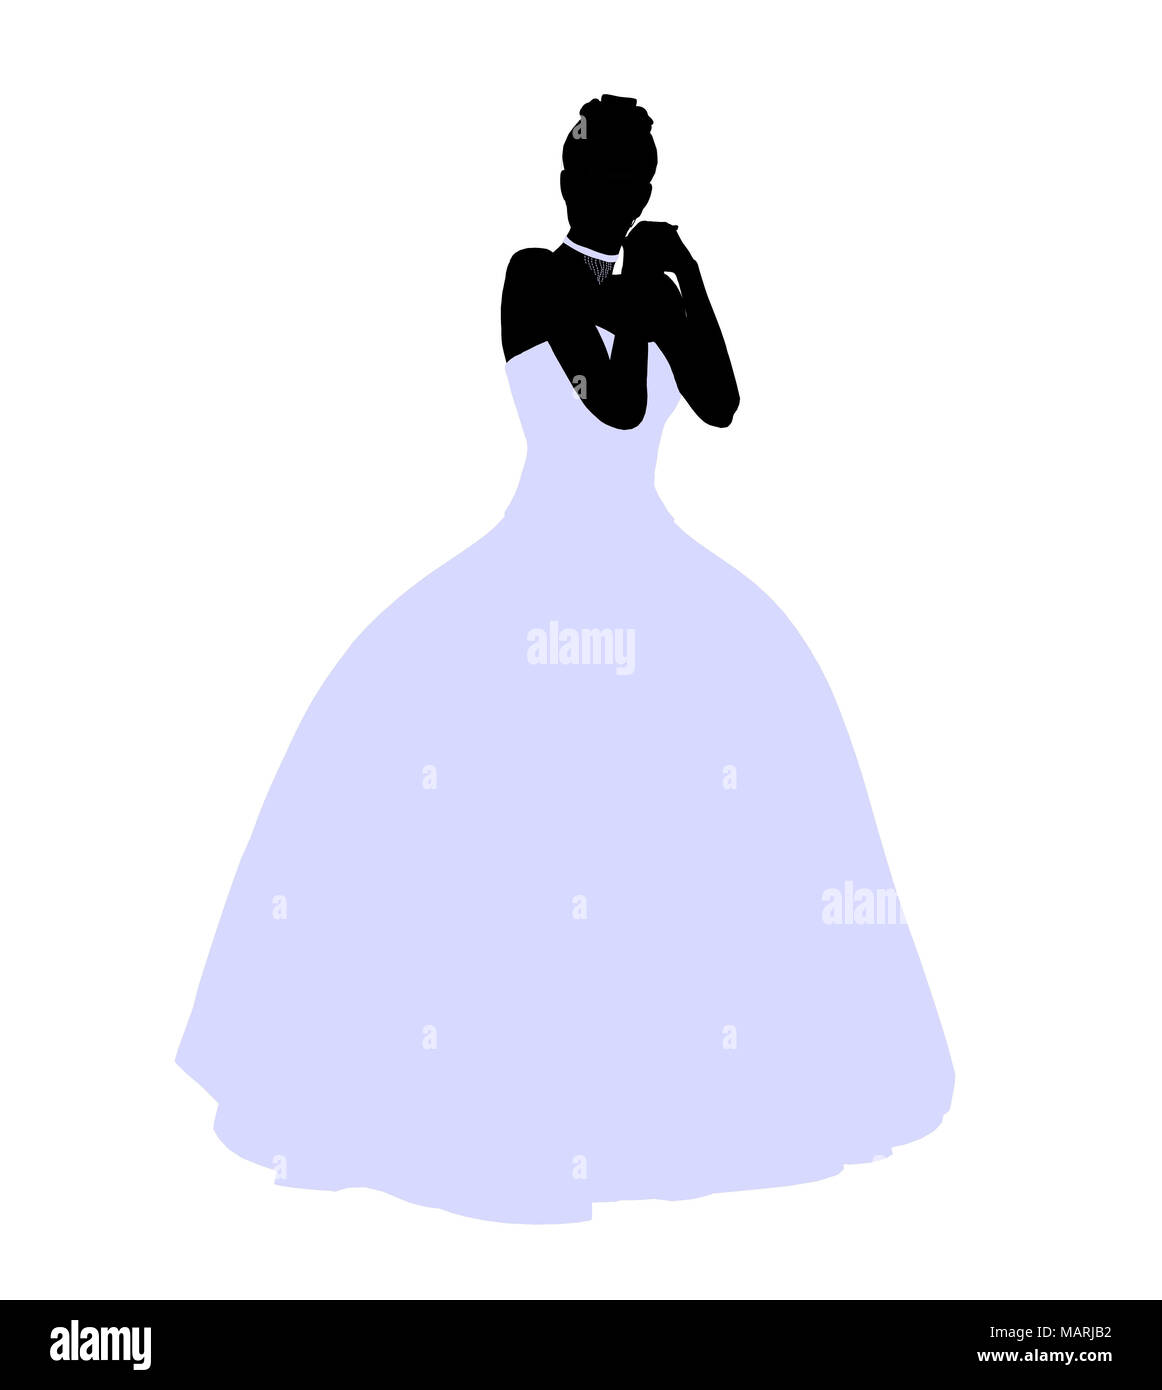 Woman in a wedding dress silhouette illustration on a white ...